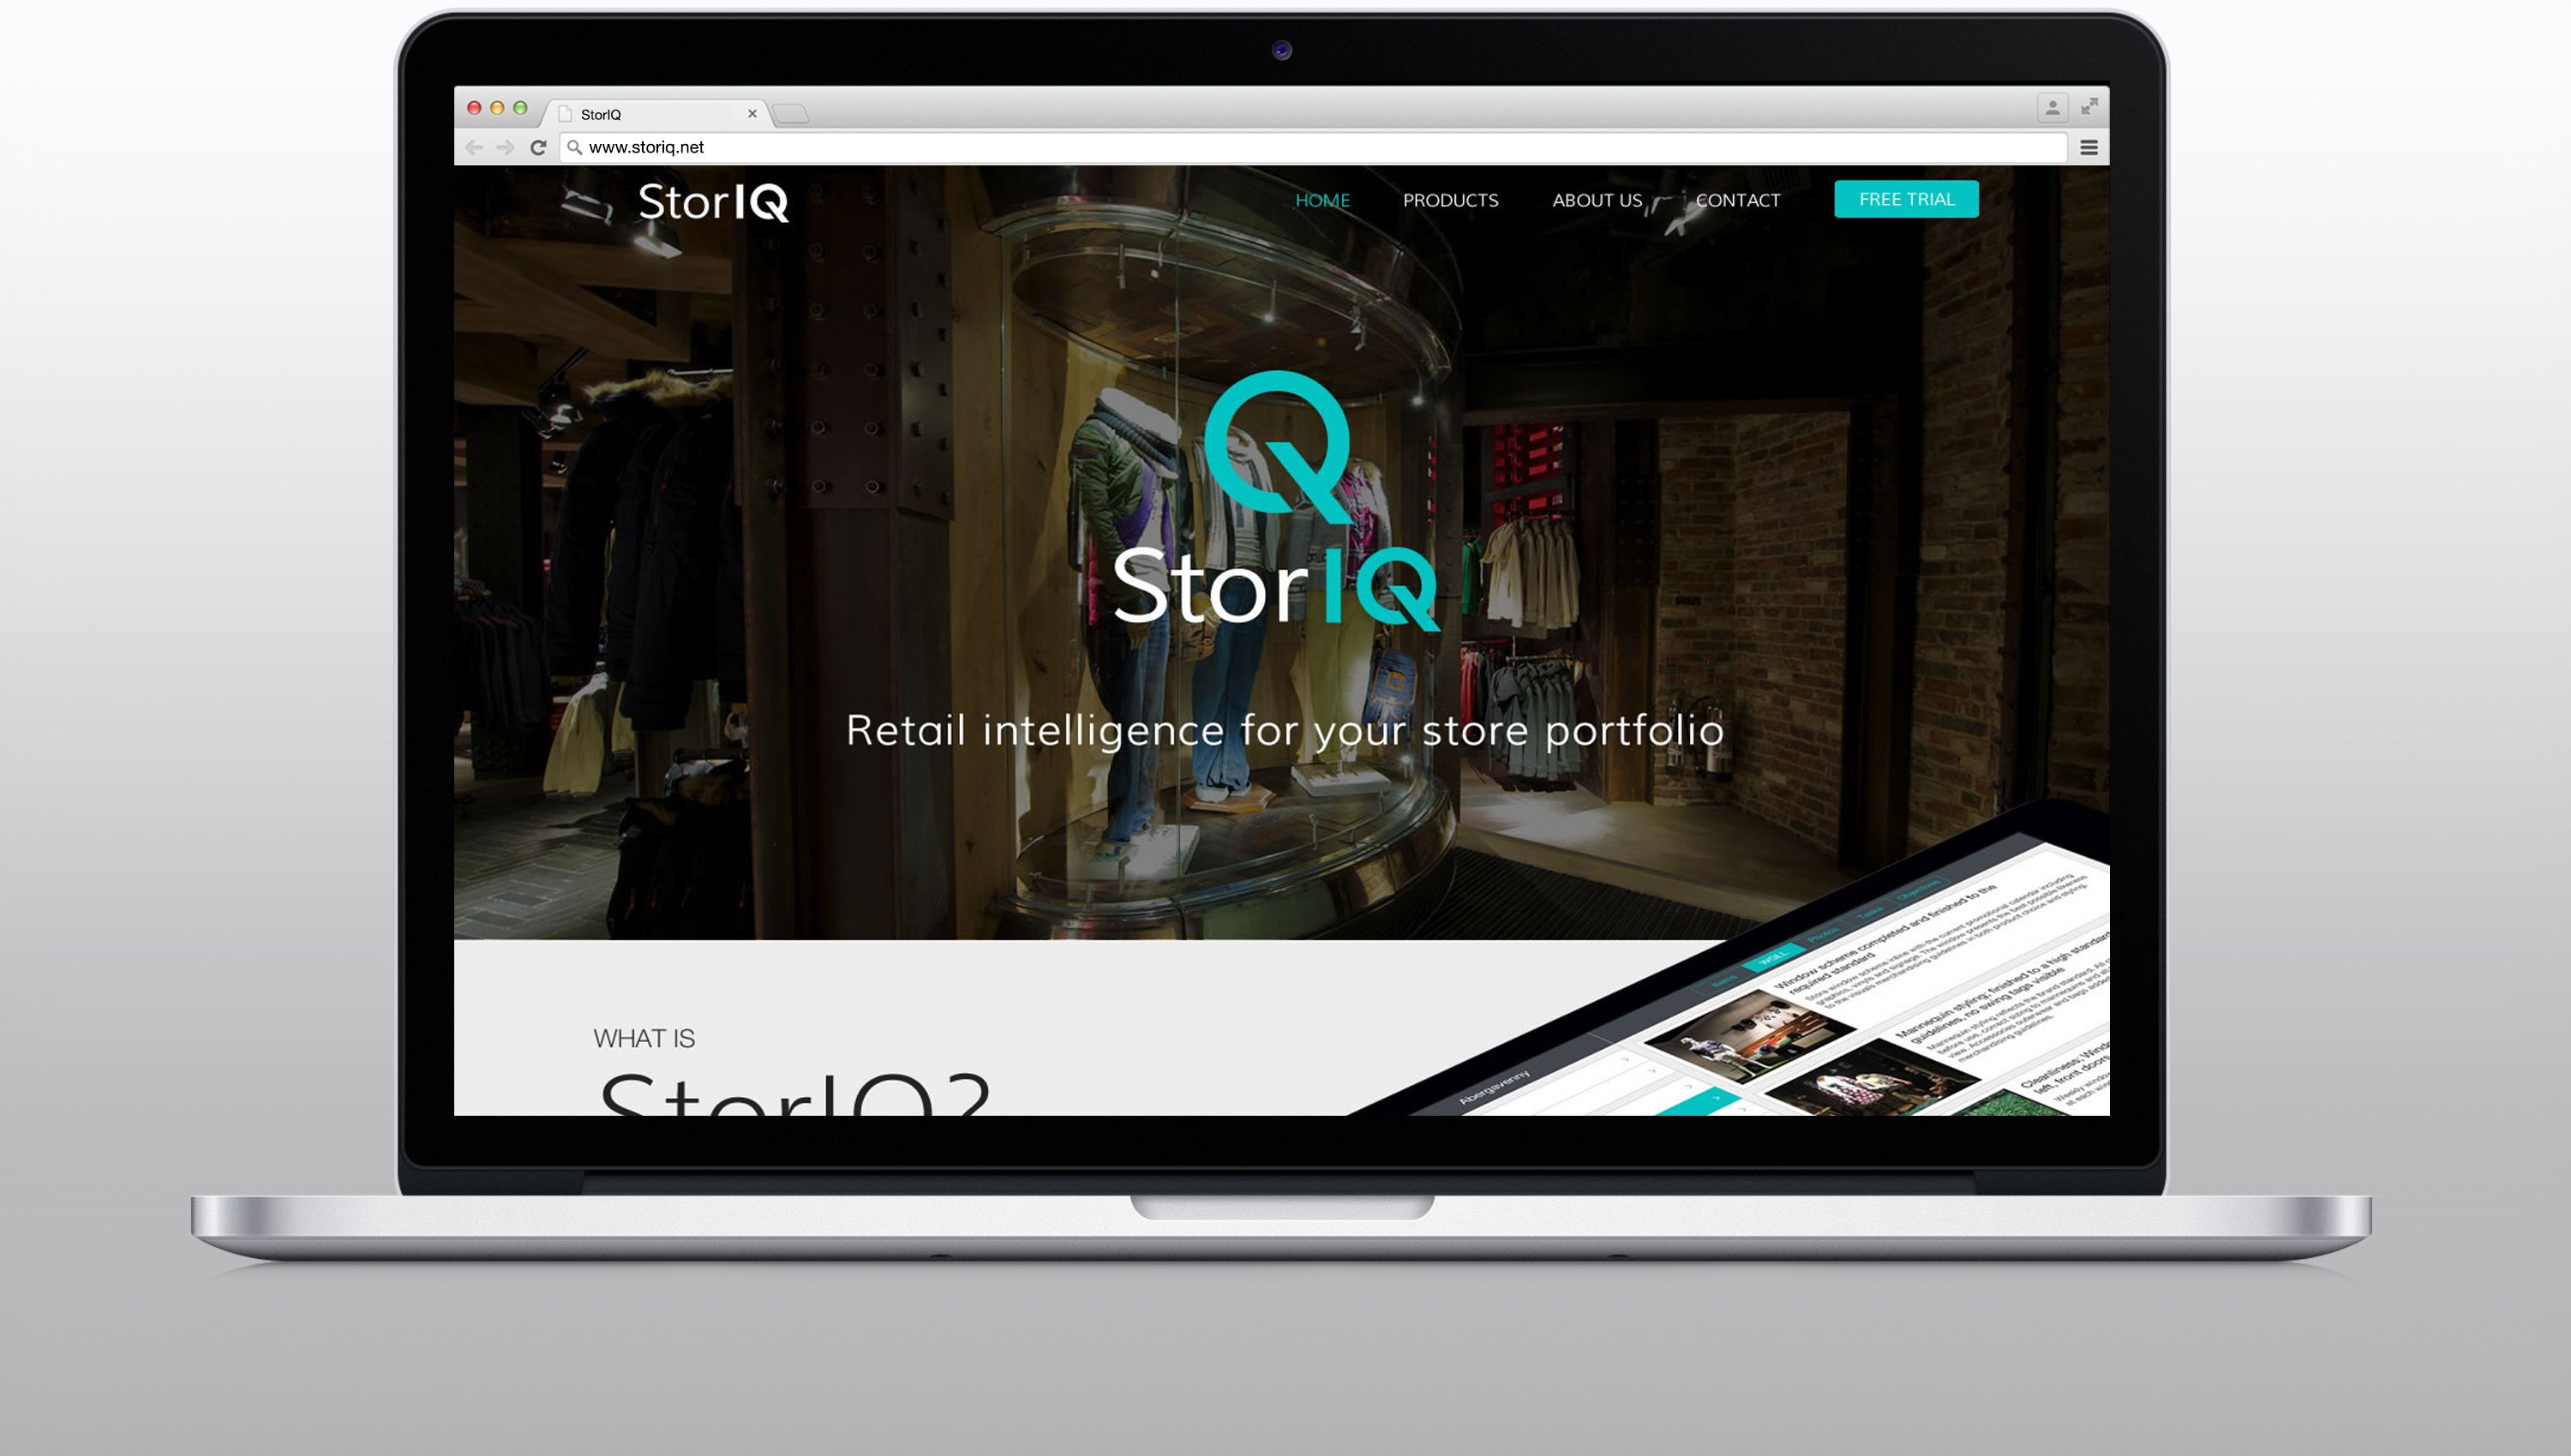 StorIQ website home page design and development on desktop